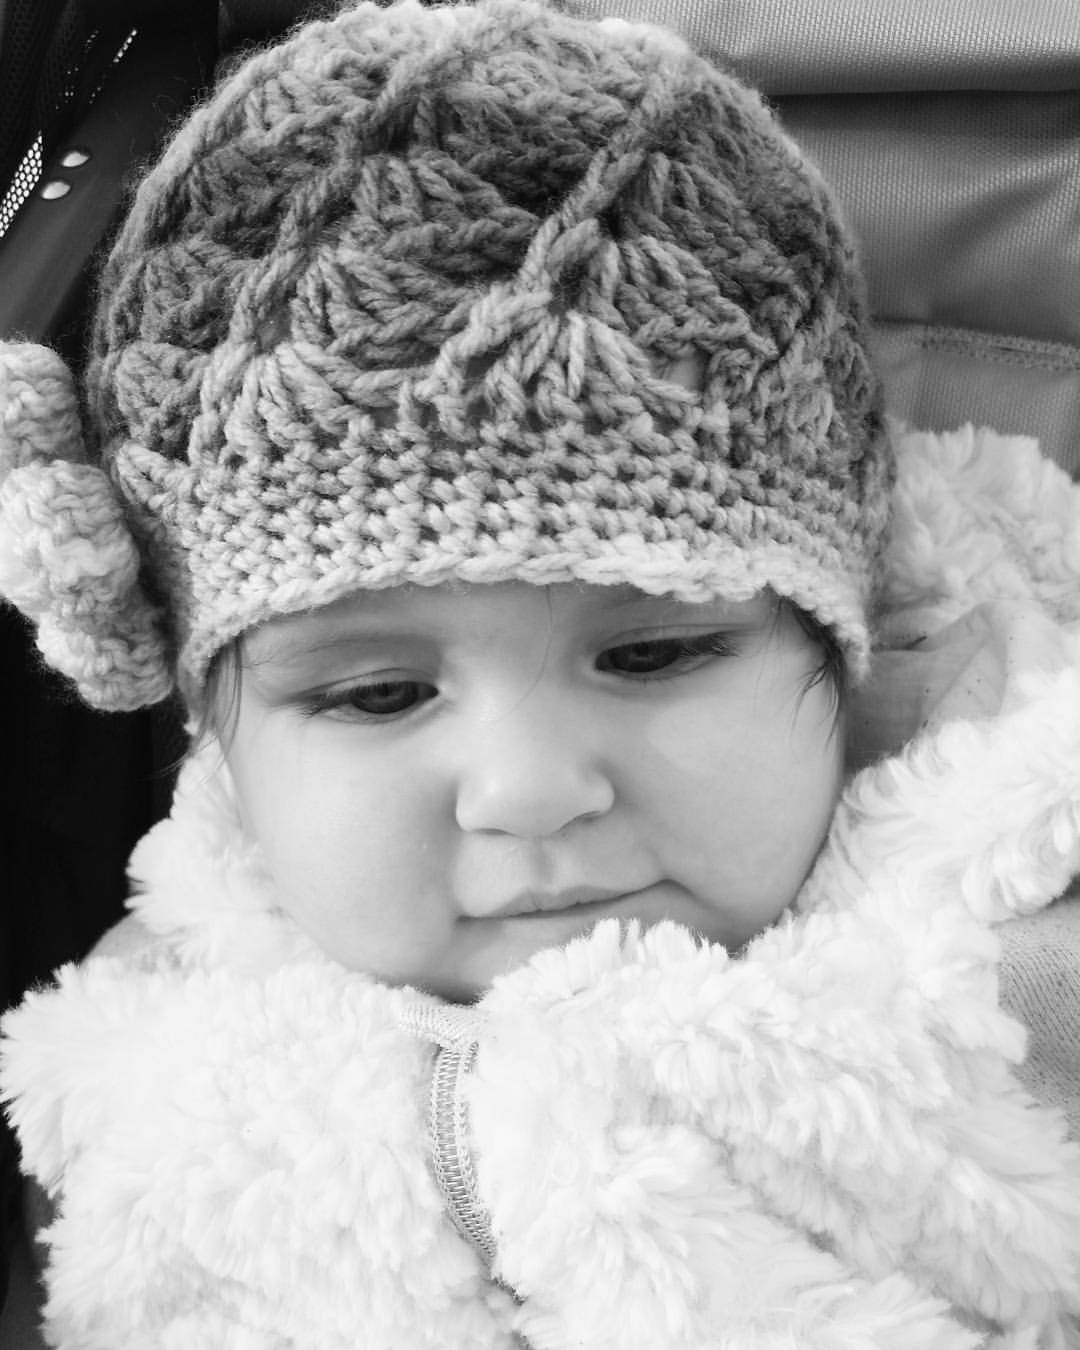 Harlow Rain, with her special hat that was handmade for her and shipped from Paris.